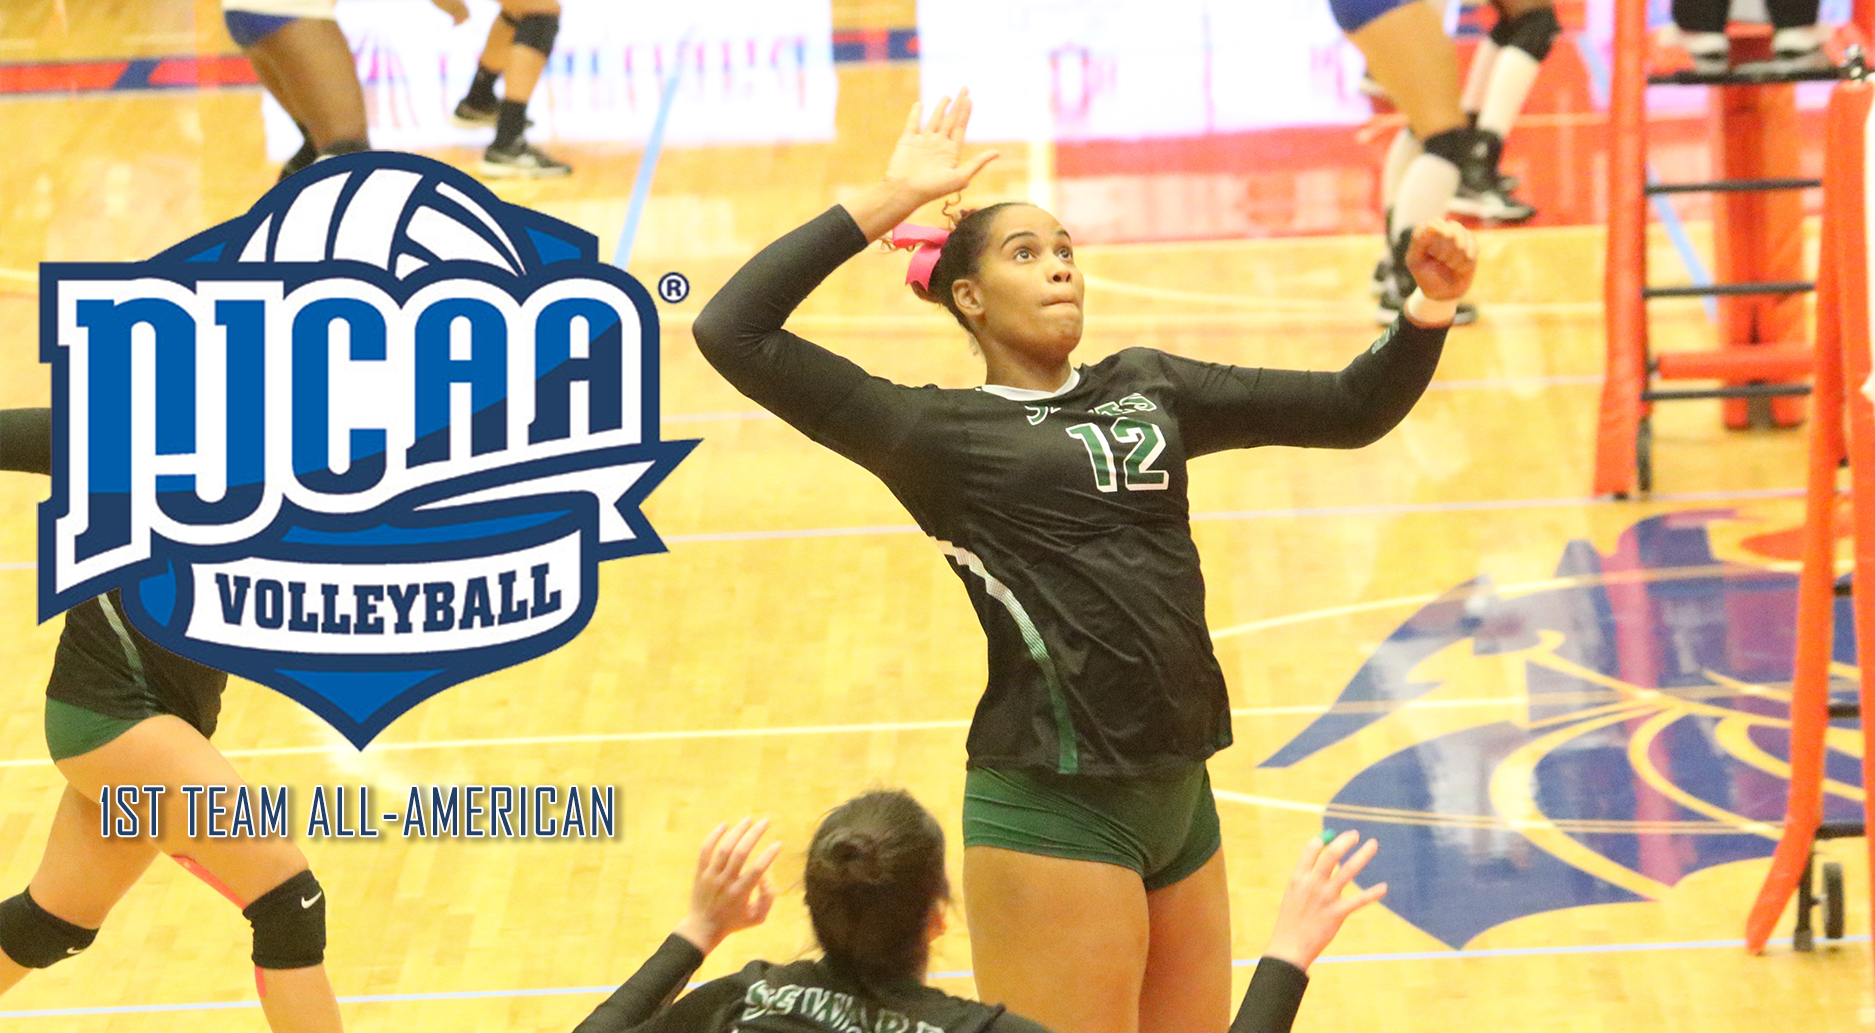 Sierra Named NJCAA First Team All American